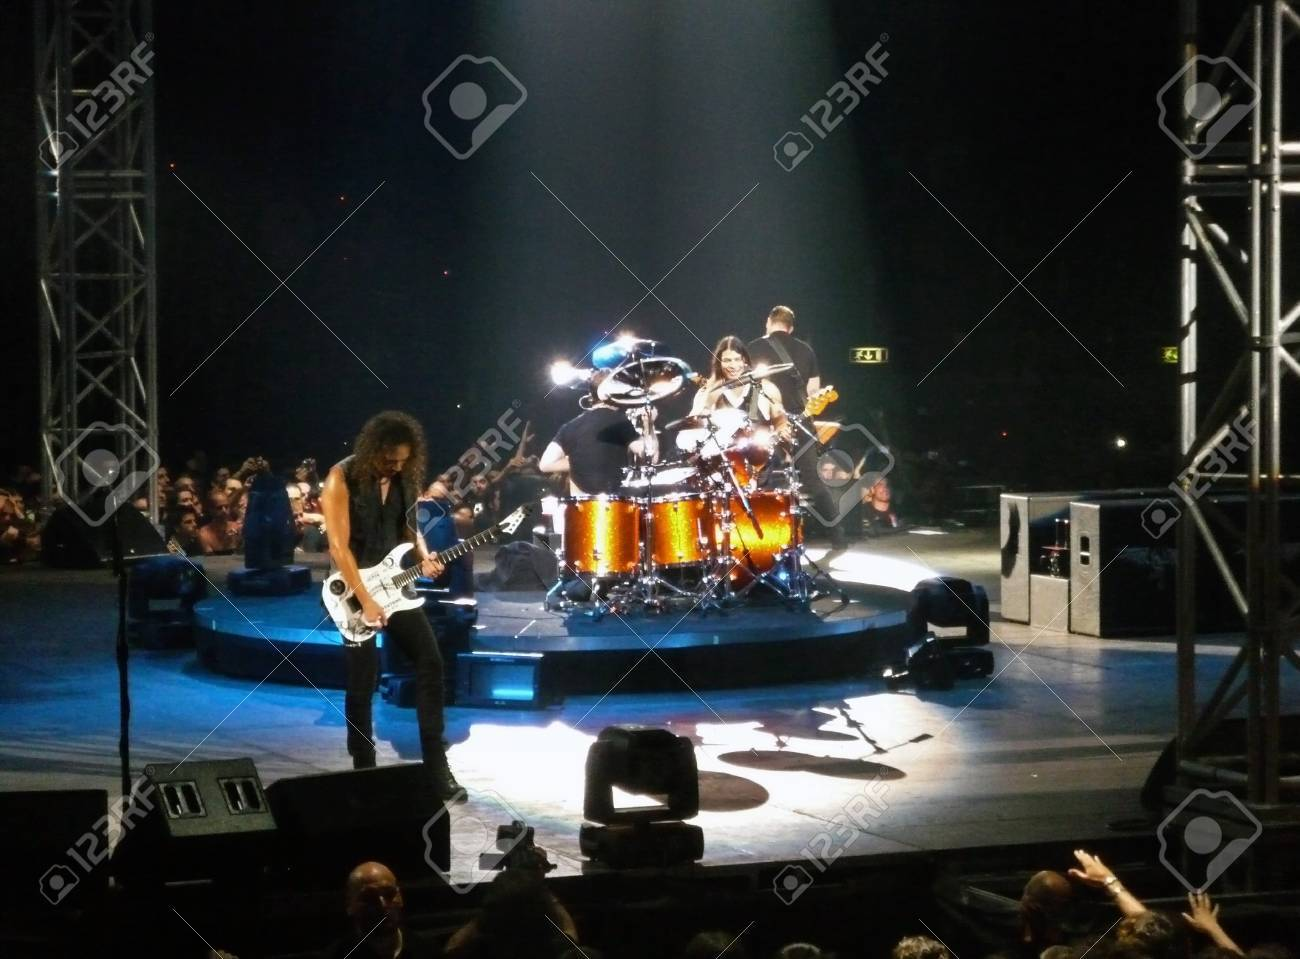 """Concert of the band """"Metallica"""", Rome 24 June, 2009. The stage Stock Photo - 10397434"""